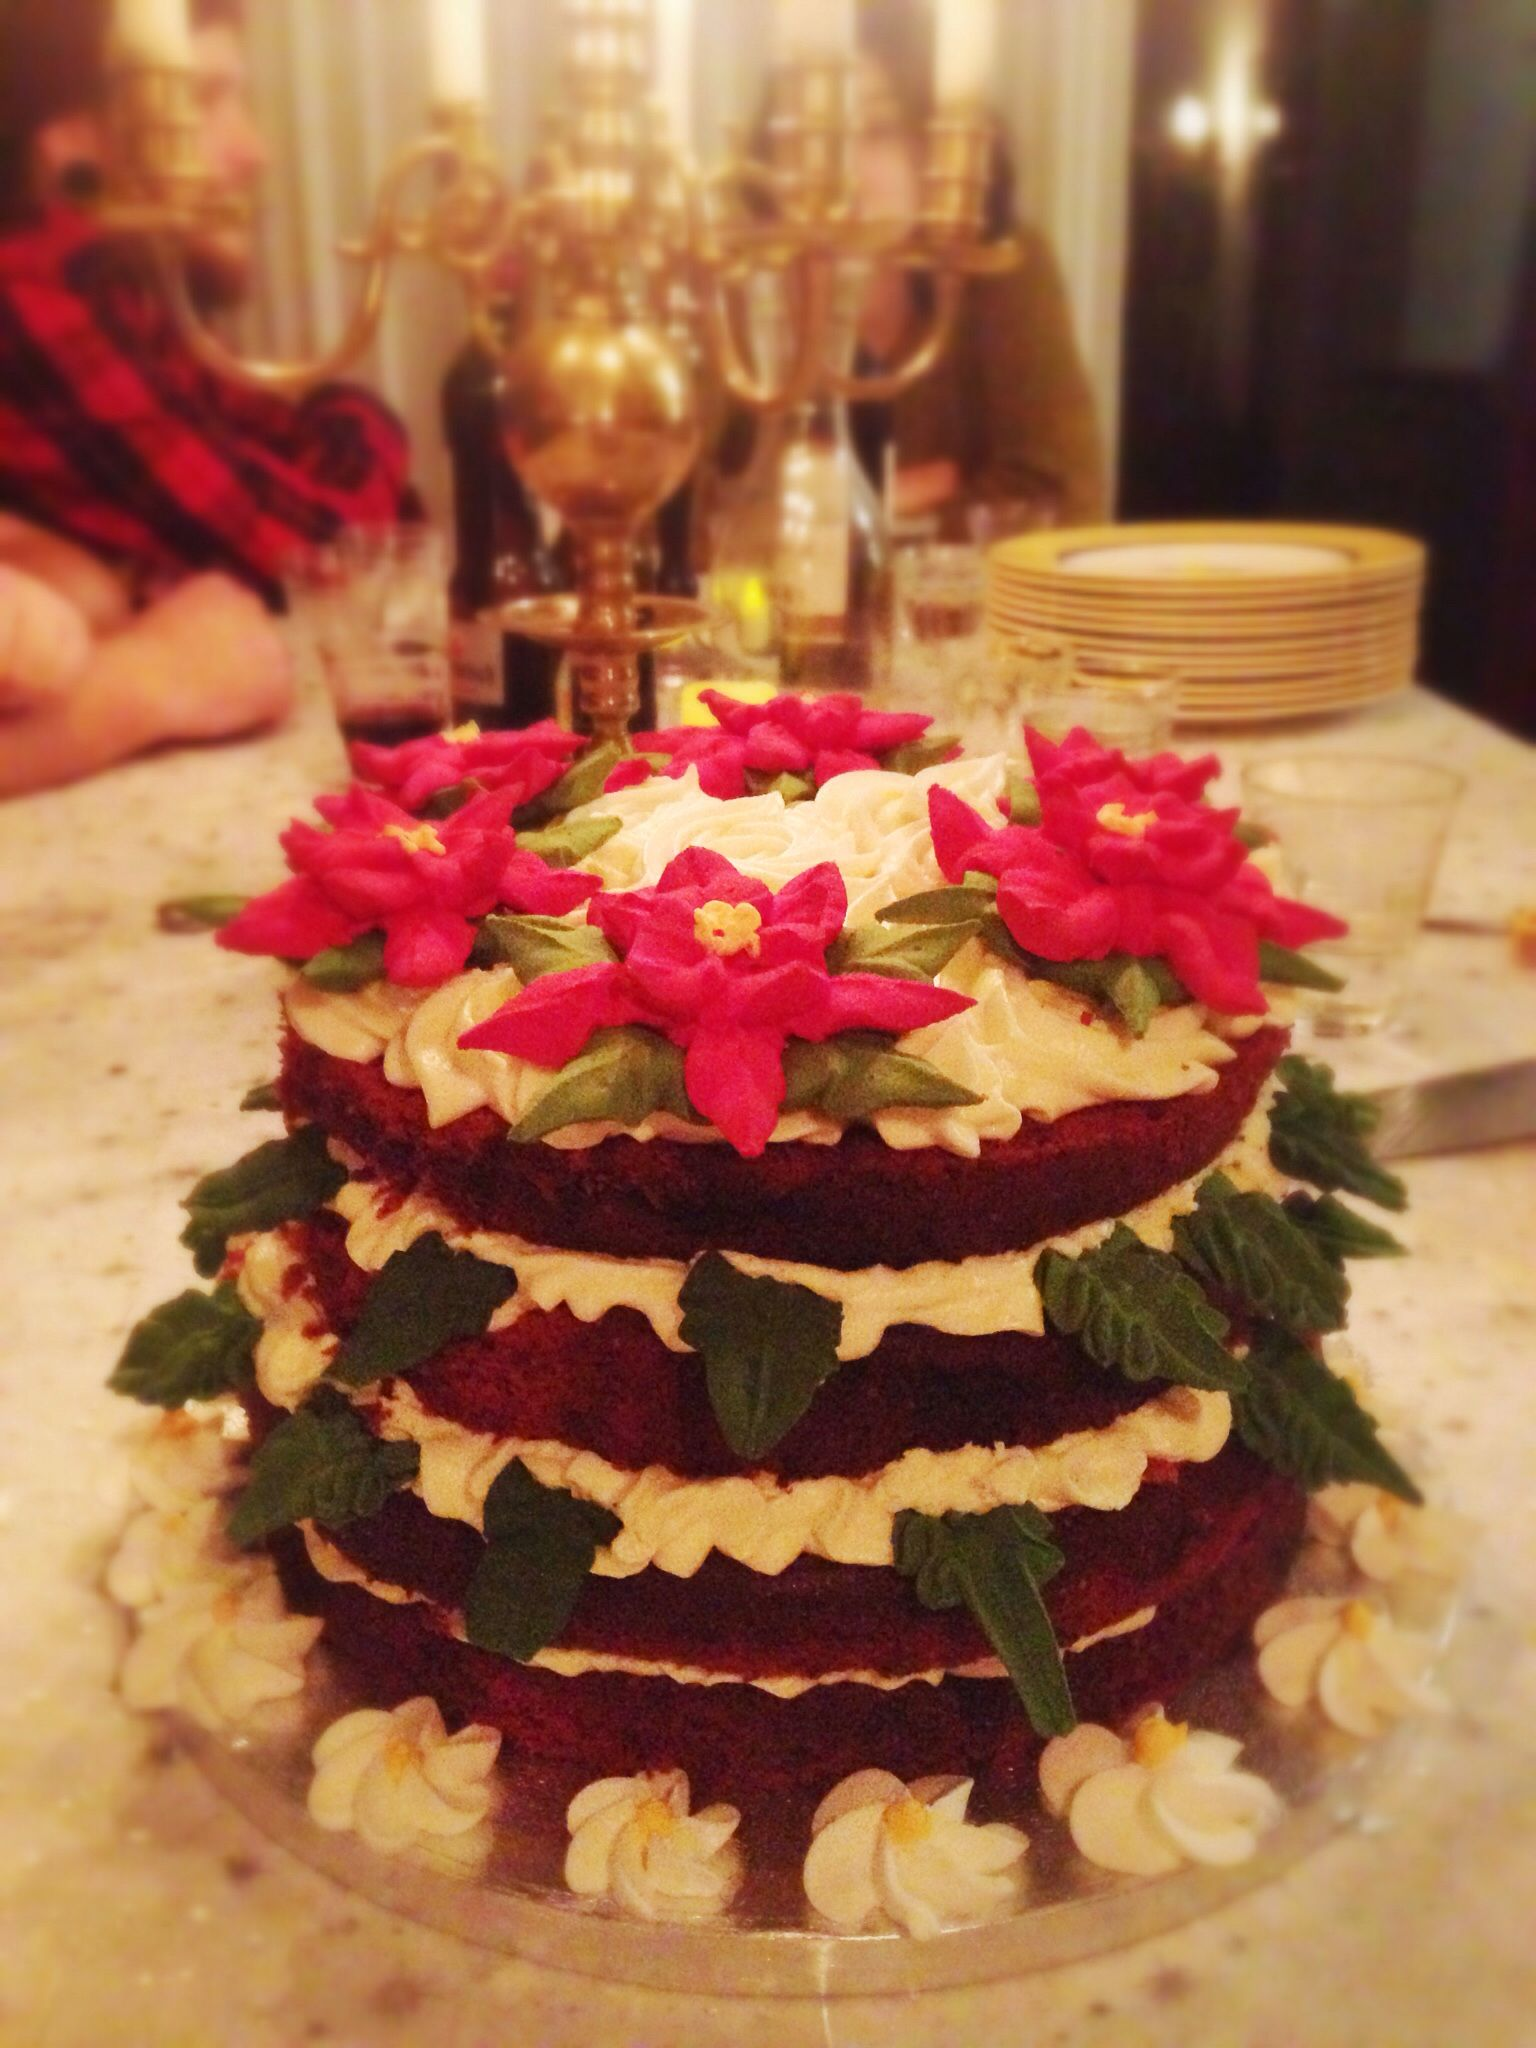 Red Velvet Cake with Cream cheese white chocolate frosting and royal icing Poinsettias